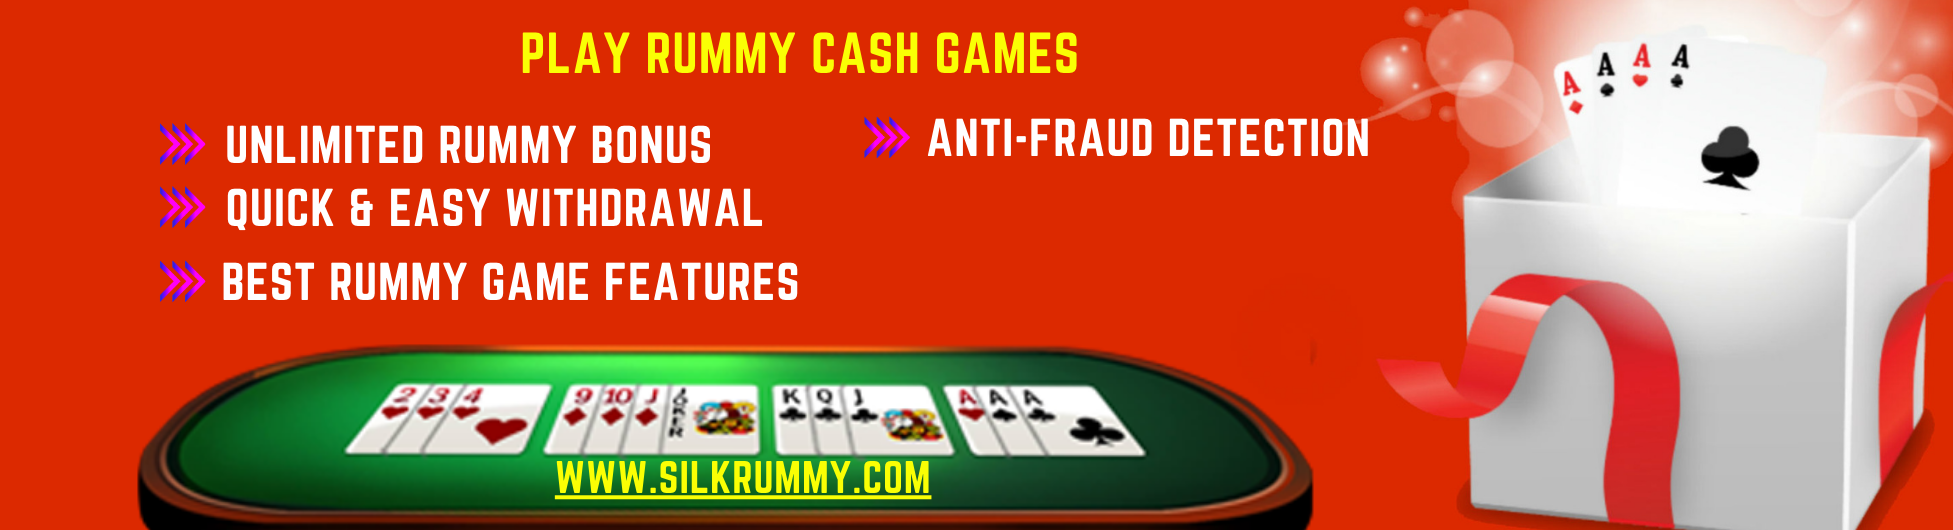 Play Real Cash Rummy Games Online & Earn Real Money